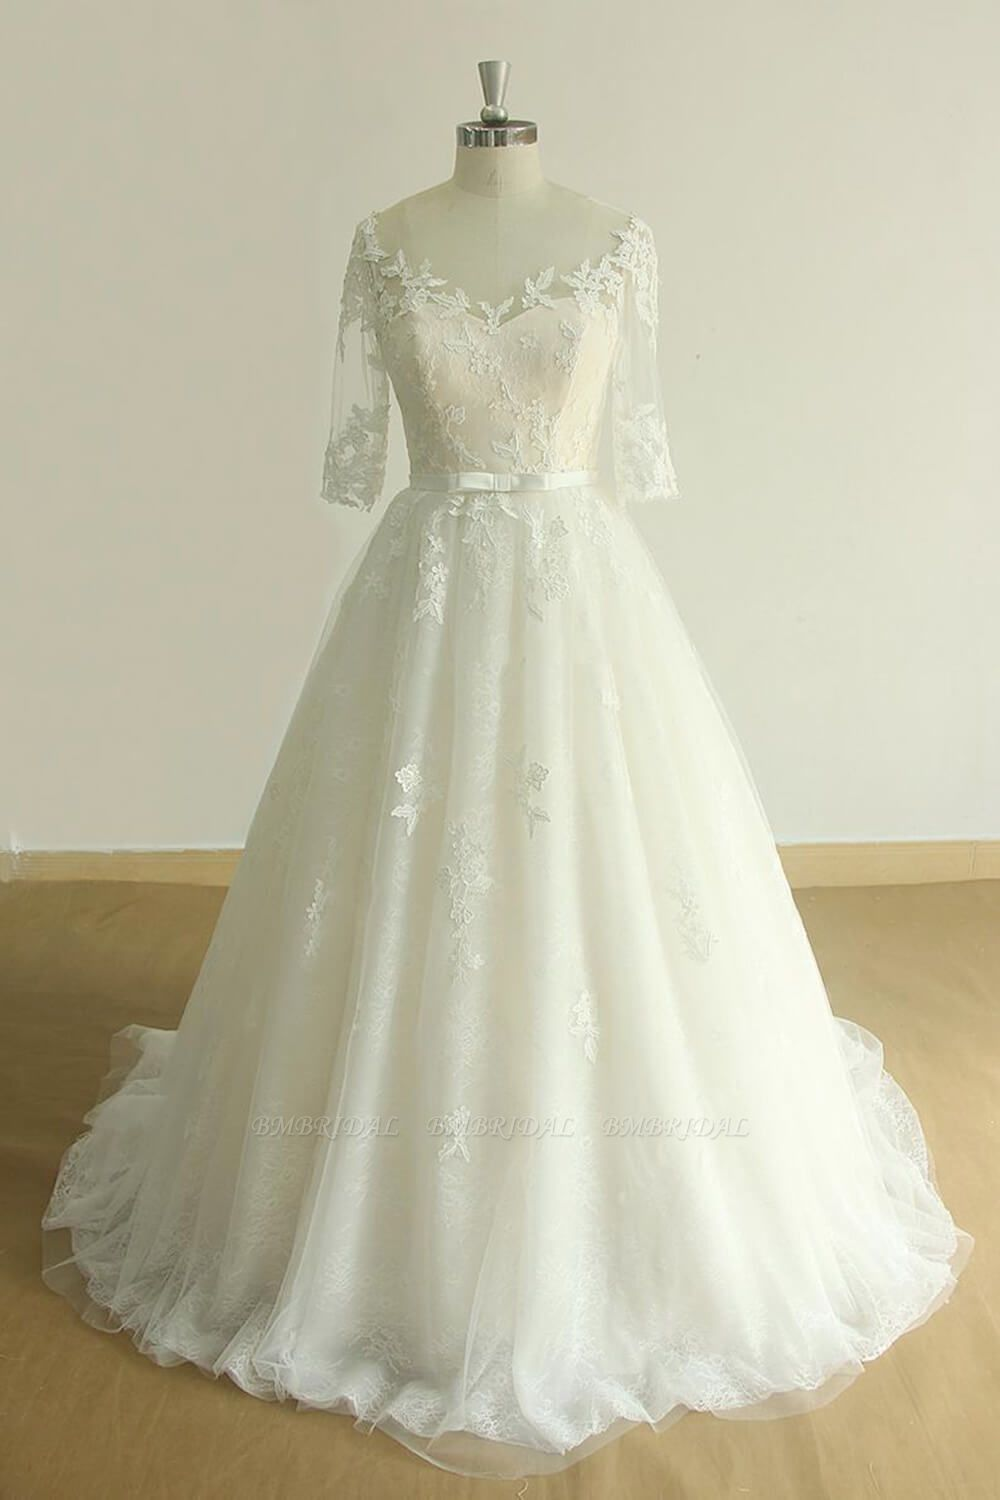 BMbridal Unique Halfsleeves Lace Tulle Wedding Dress A-line White Appliques Bridal Gowns On Sale